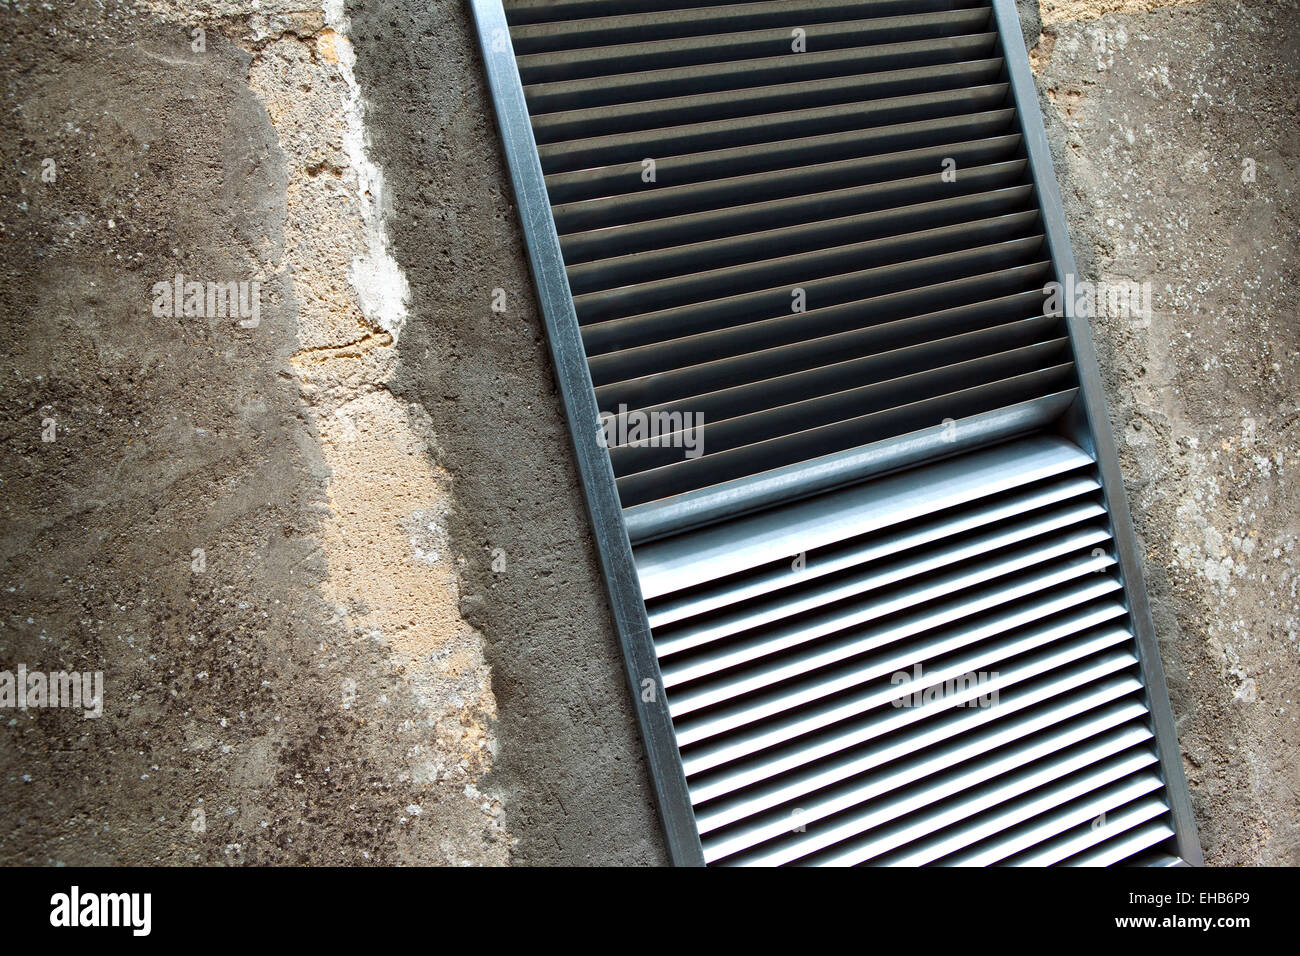 House Wall Vent Stock Photos Amp House Wall Vent Stock